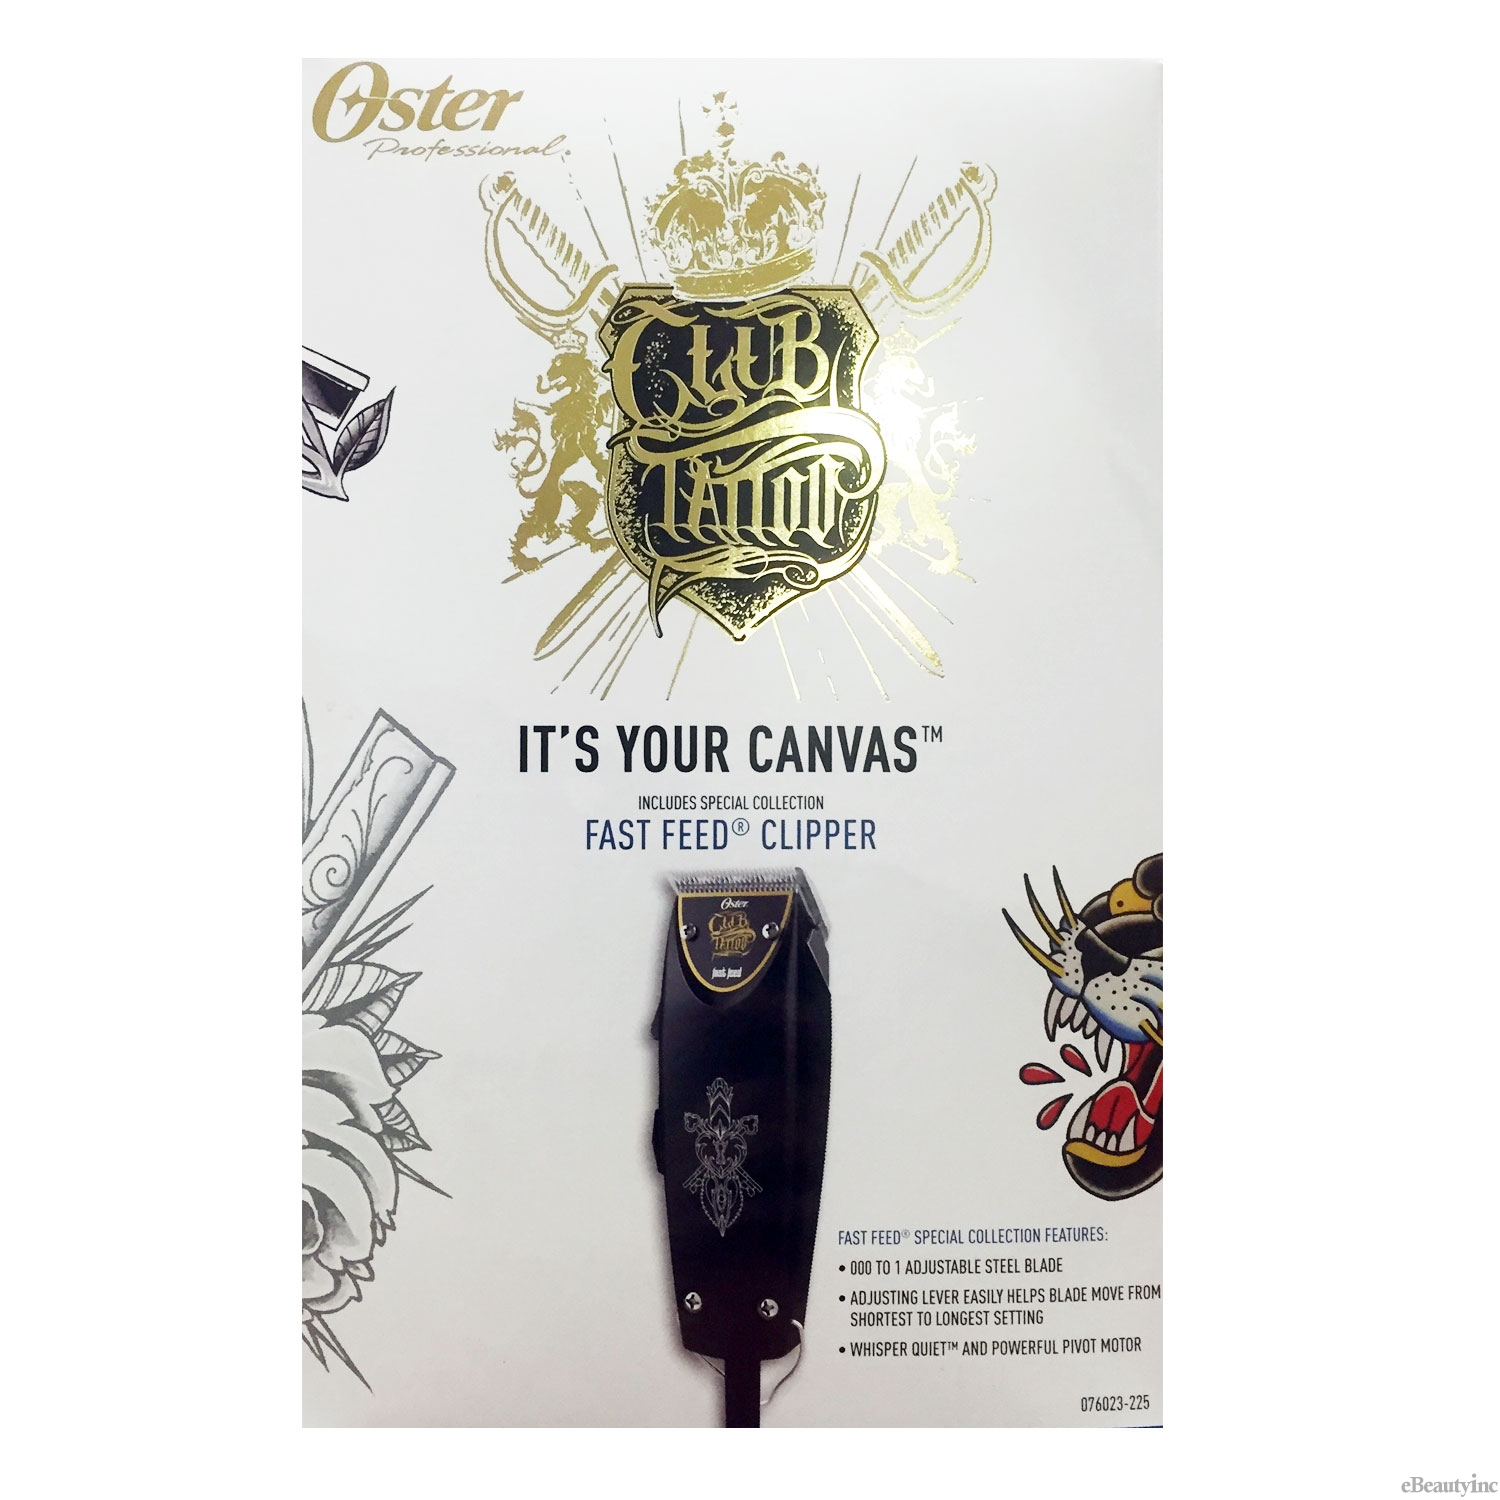 Image of Oster Club Tattoo Fast Feed Limited Edition Hair Clipper #076023-225